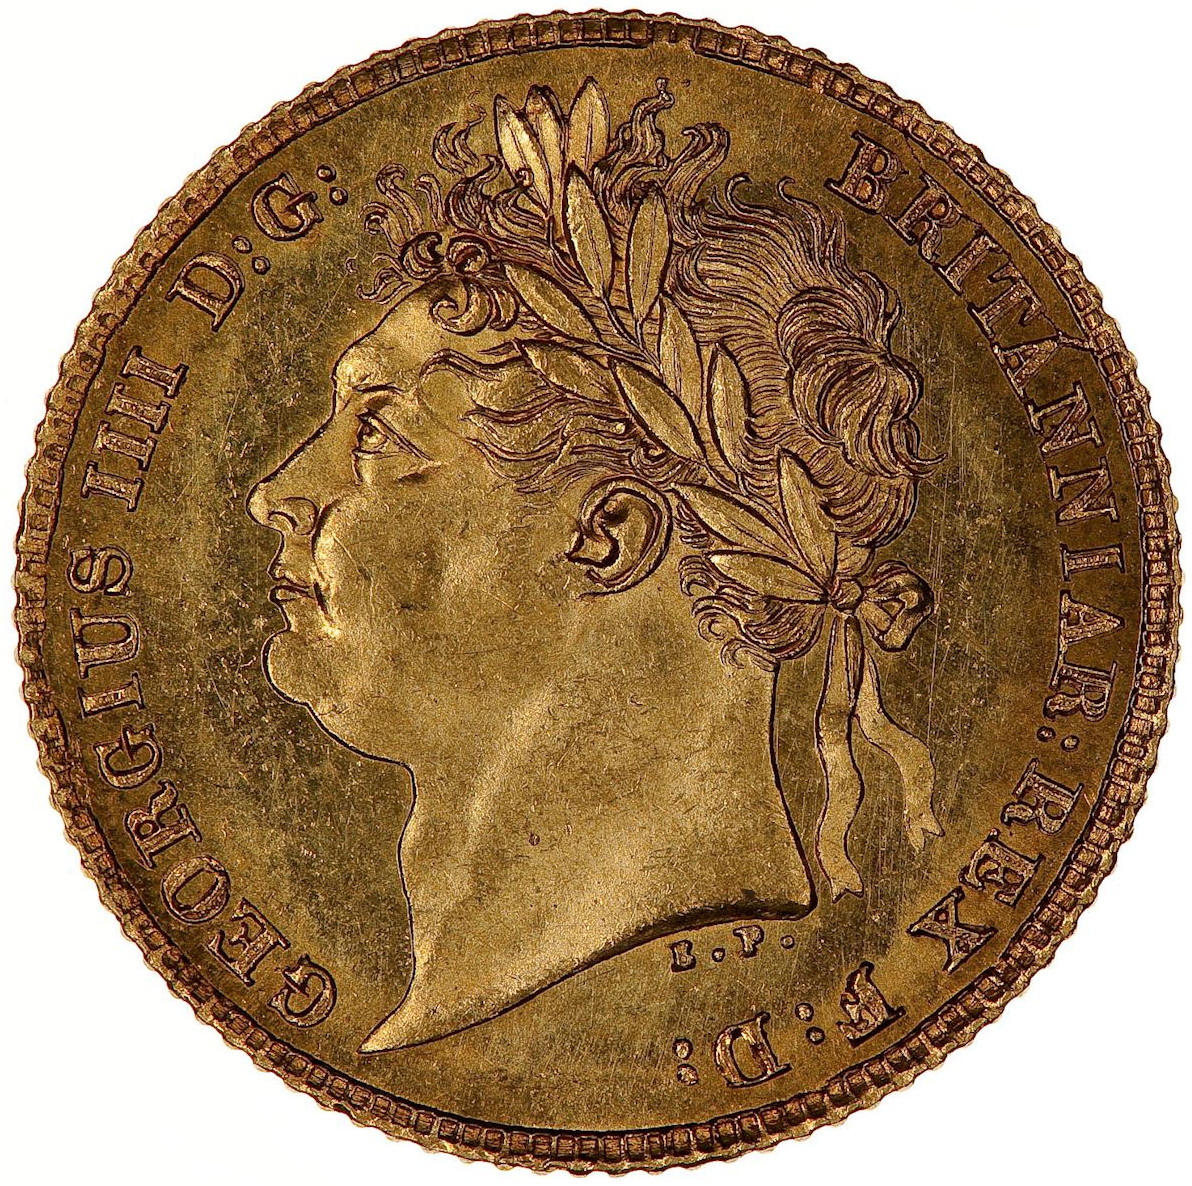 Half Sovereign (Pre-decimal): Photo Coin - Half-Sovereign, George IV, Great Britain, 1824